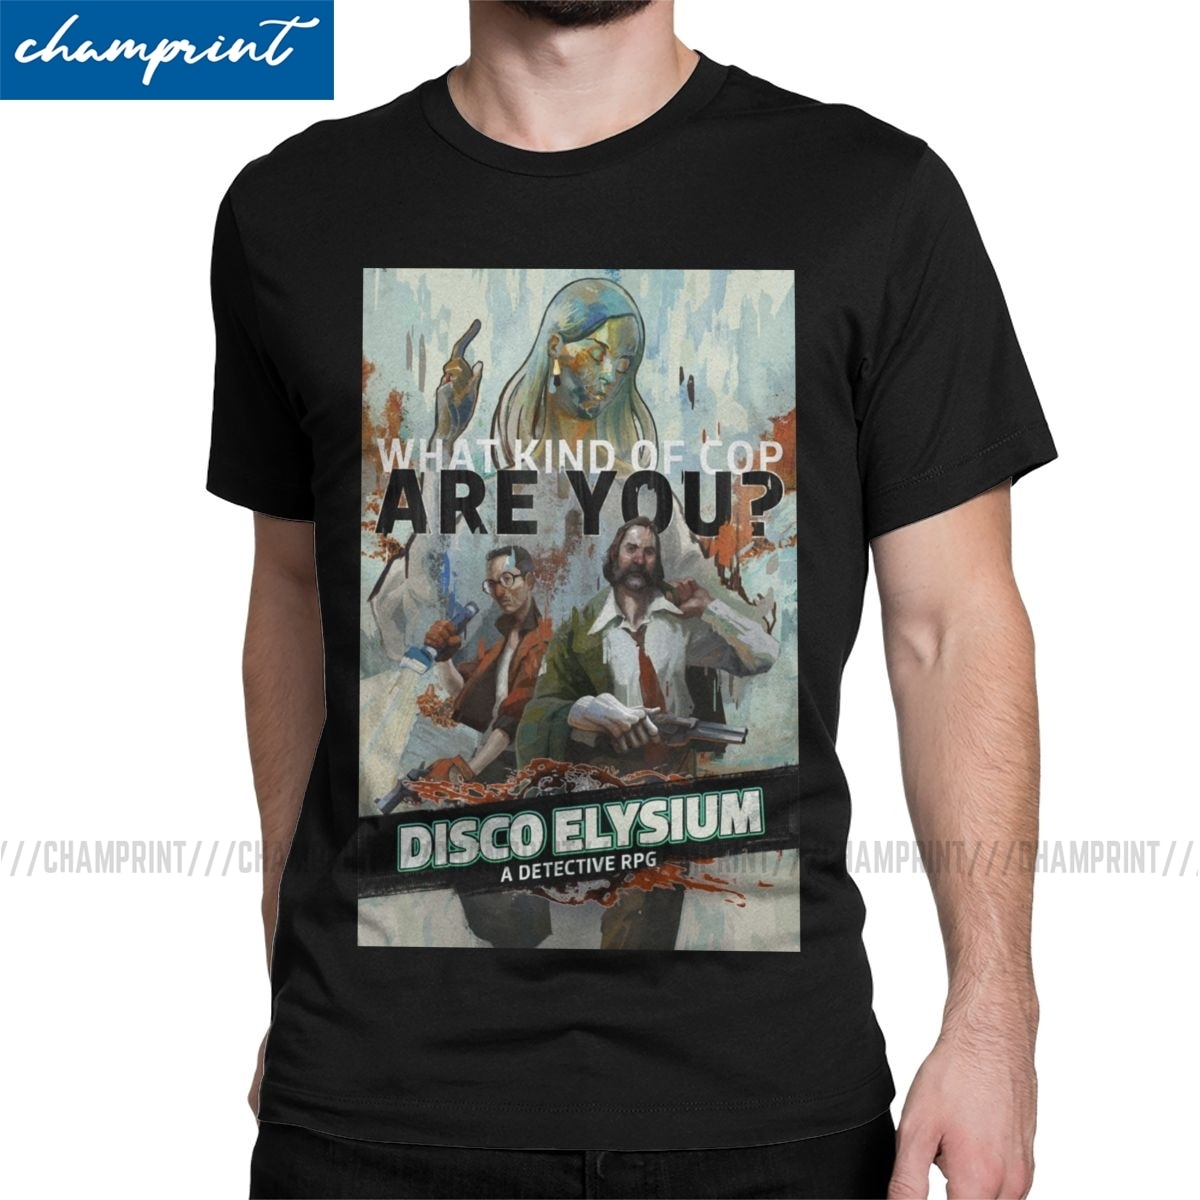 Novelty Disco Elysium Poster T-Shirts for Men Crew Neck Pure Cotton T Shirts Short Sleeve Tees Gift Idea Tops